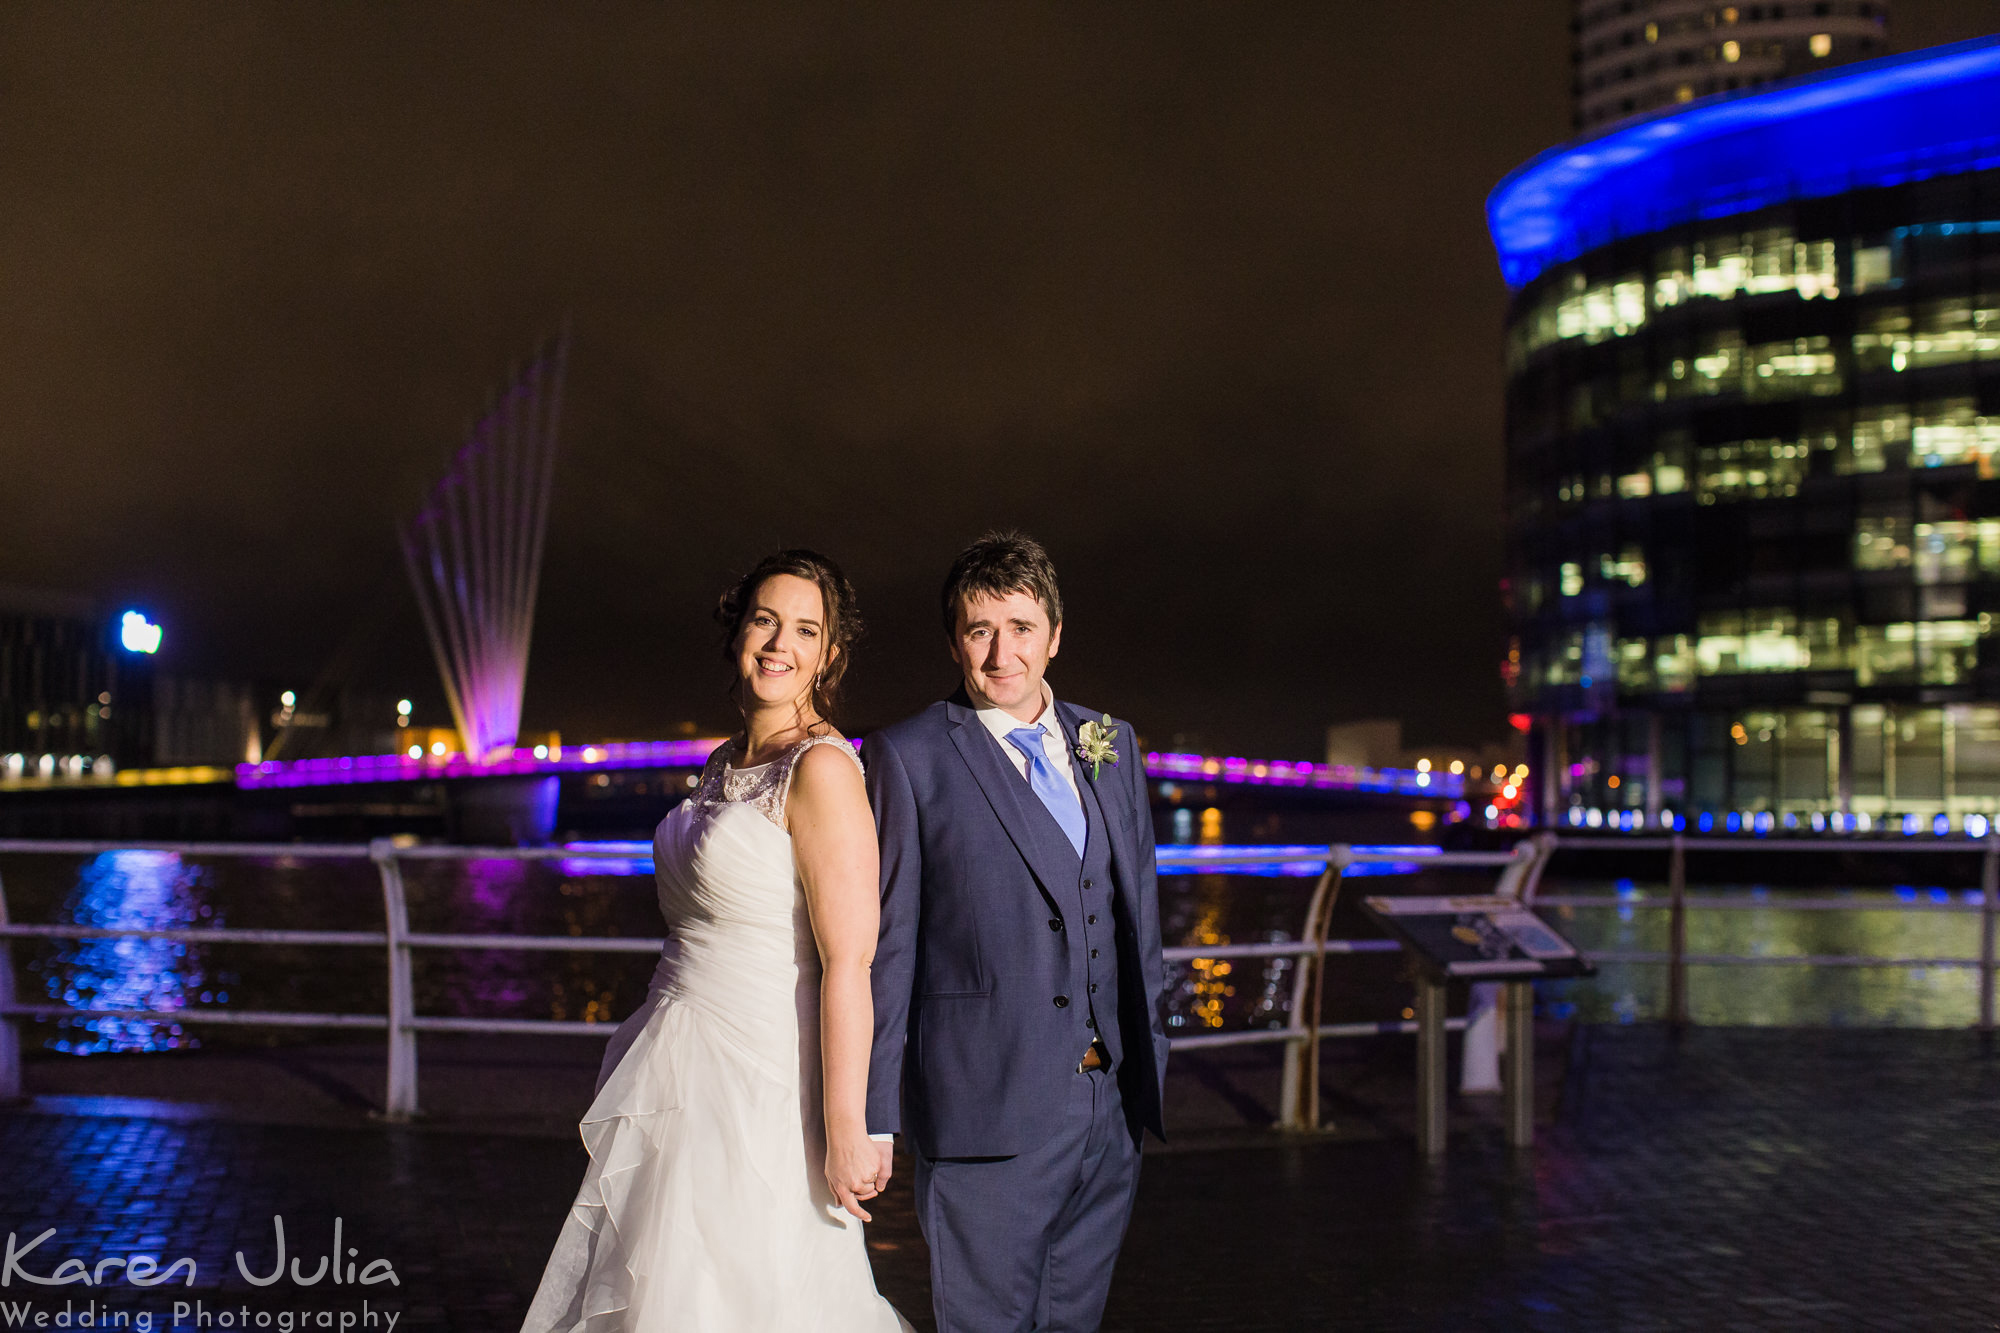 bride and groom portrait at night at their Lowry Theatre Winter Wedding